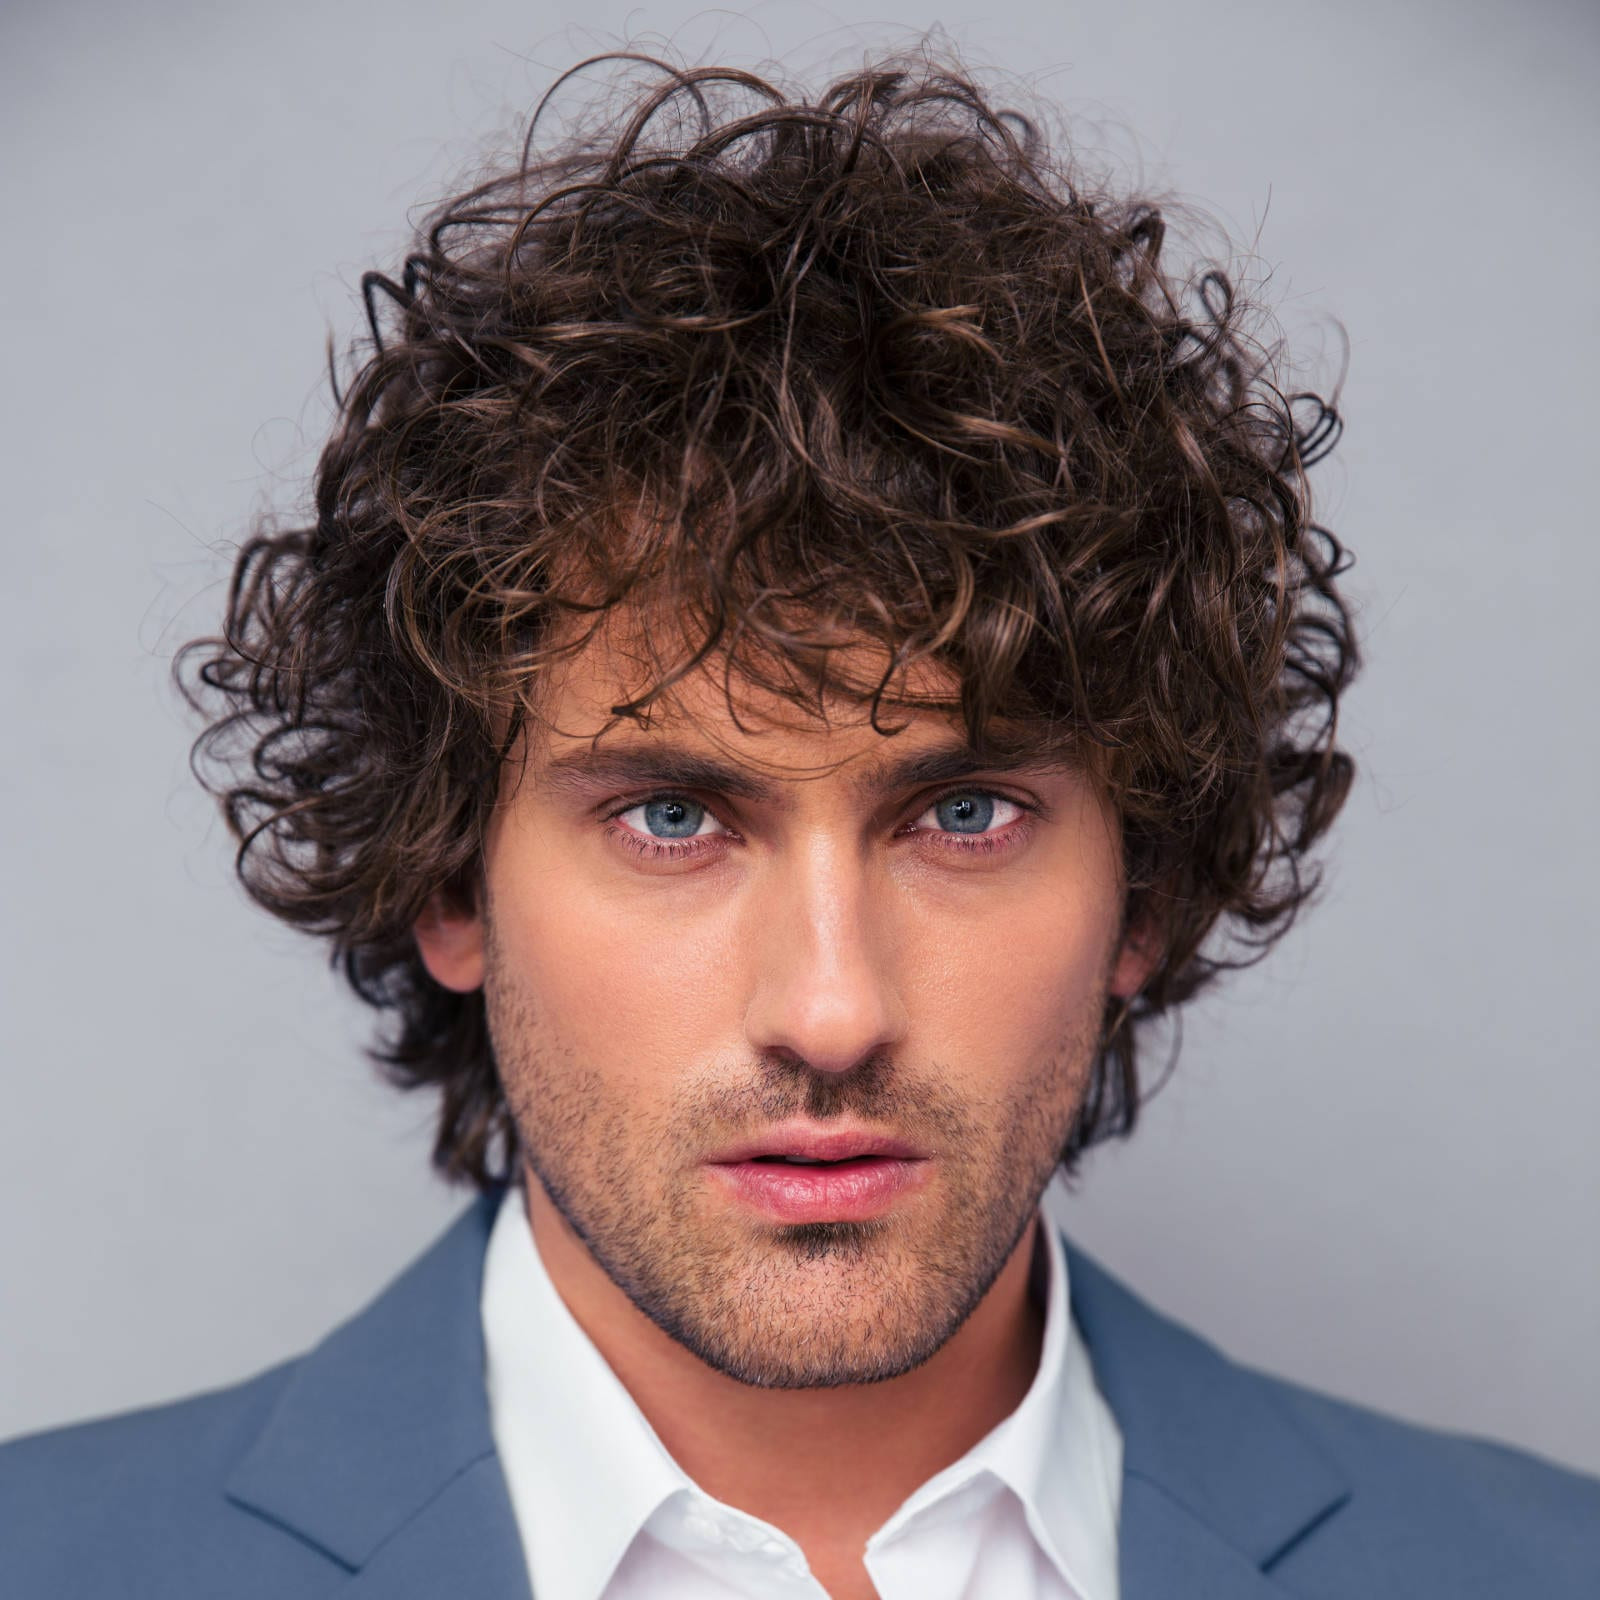 Best ideas about Hairstyle For Curly Hair Men . Save or Pin 40 Modern Men s Hairstyles for Curly Hair That Will Now.